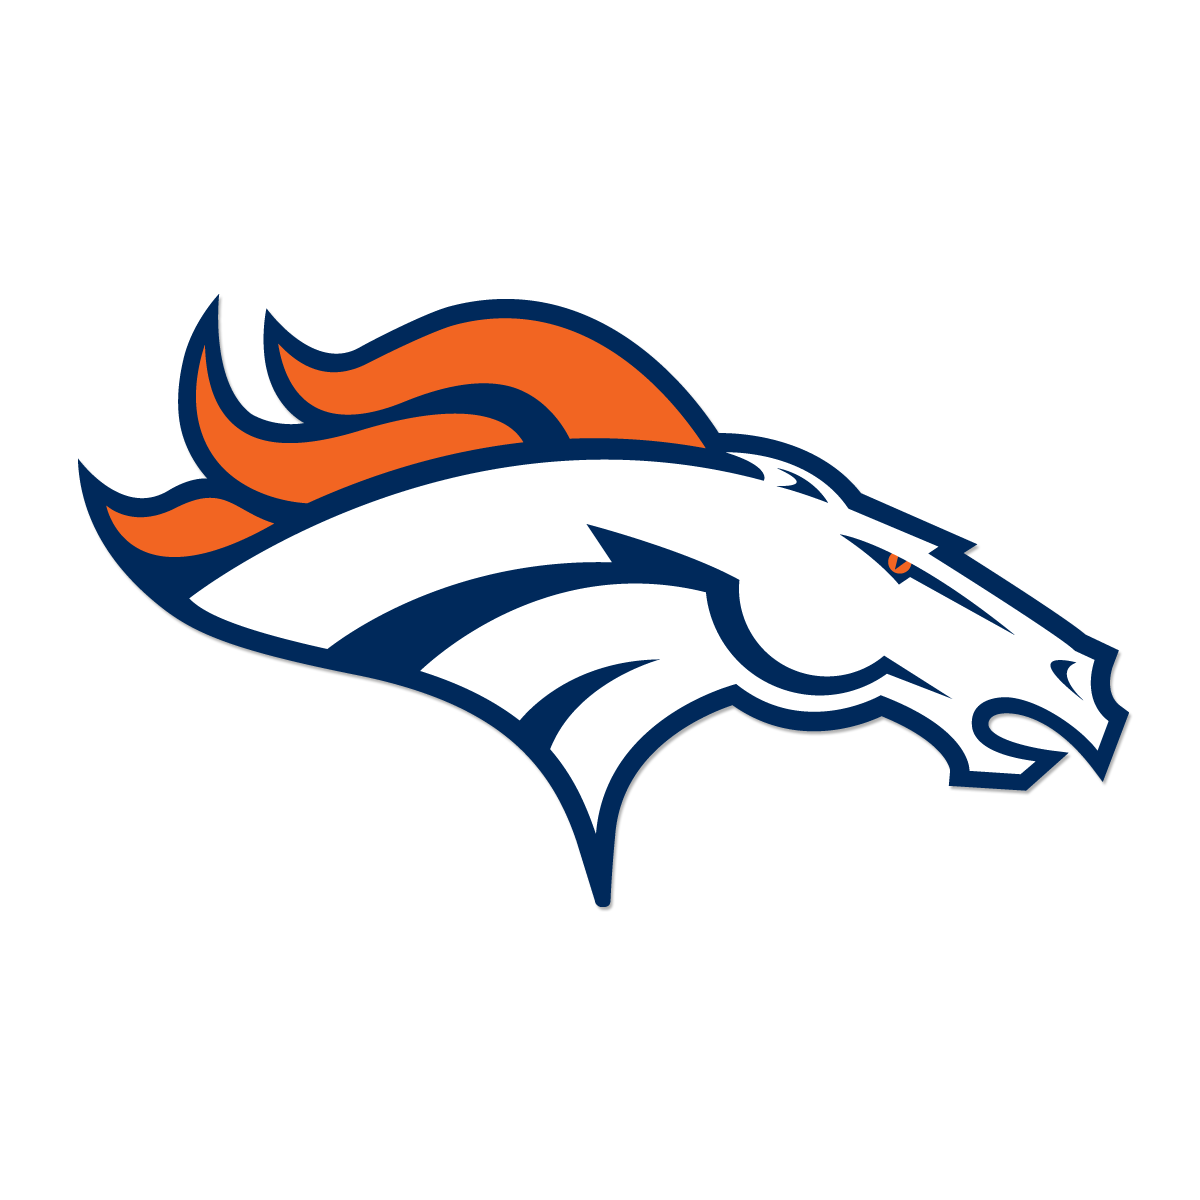 Denver Broncos Wallpaper Logo - 2018 Wallpapers HD | Wallpaper ...